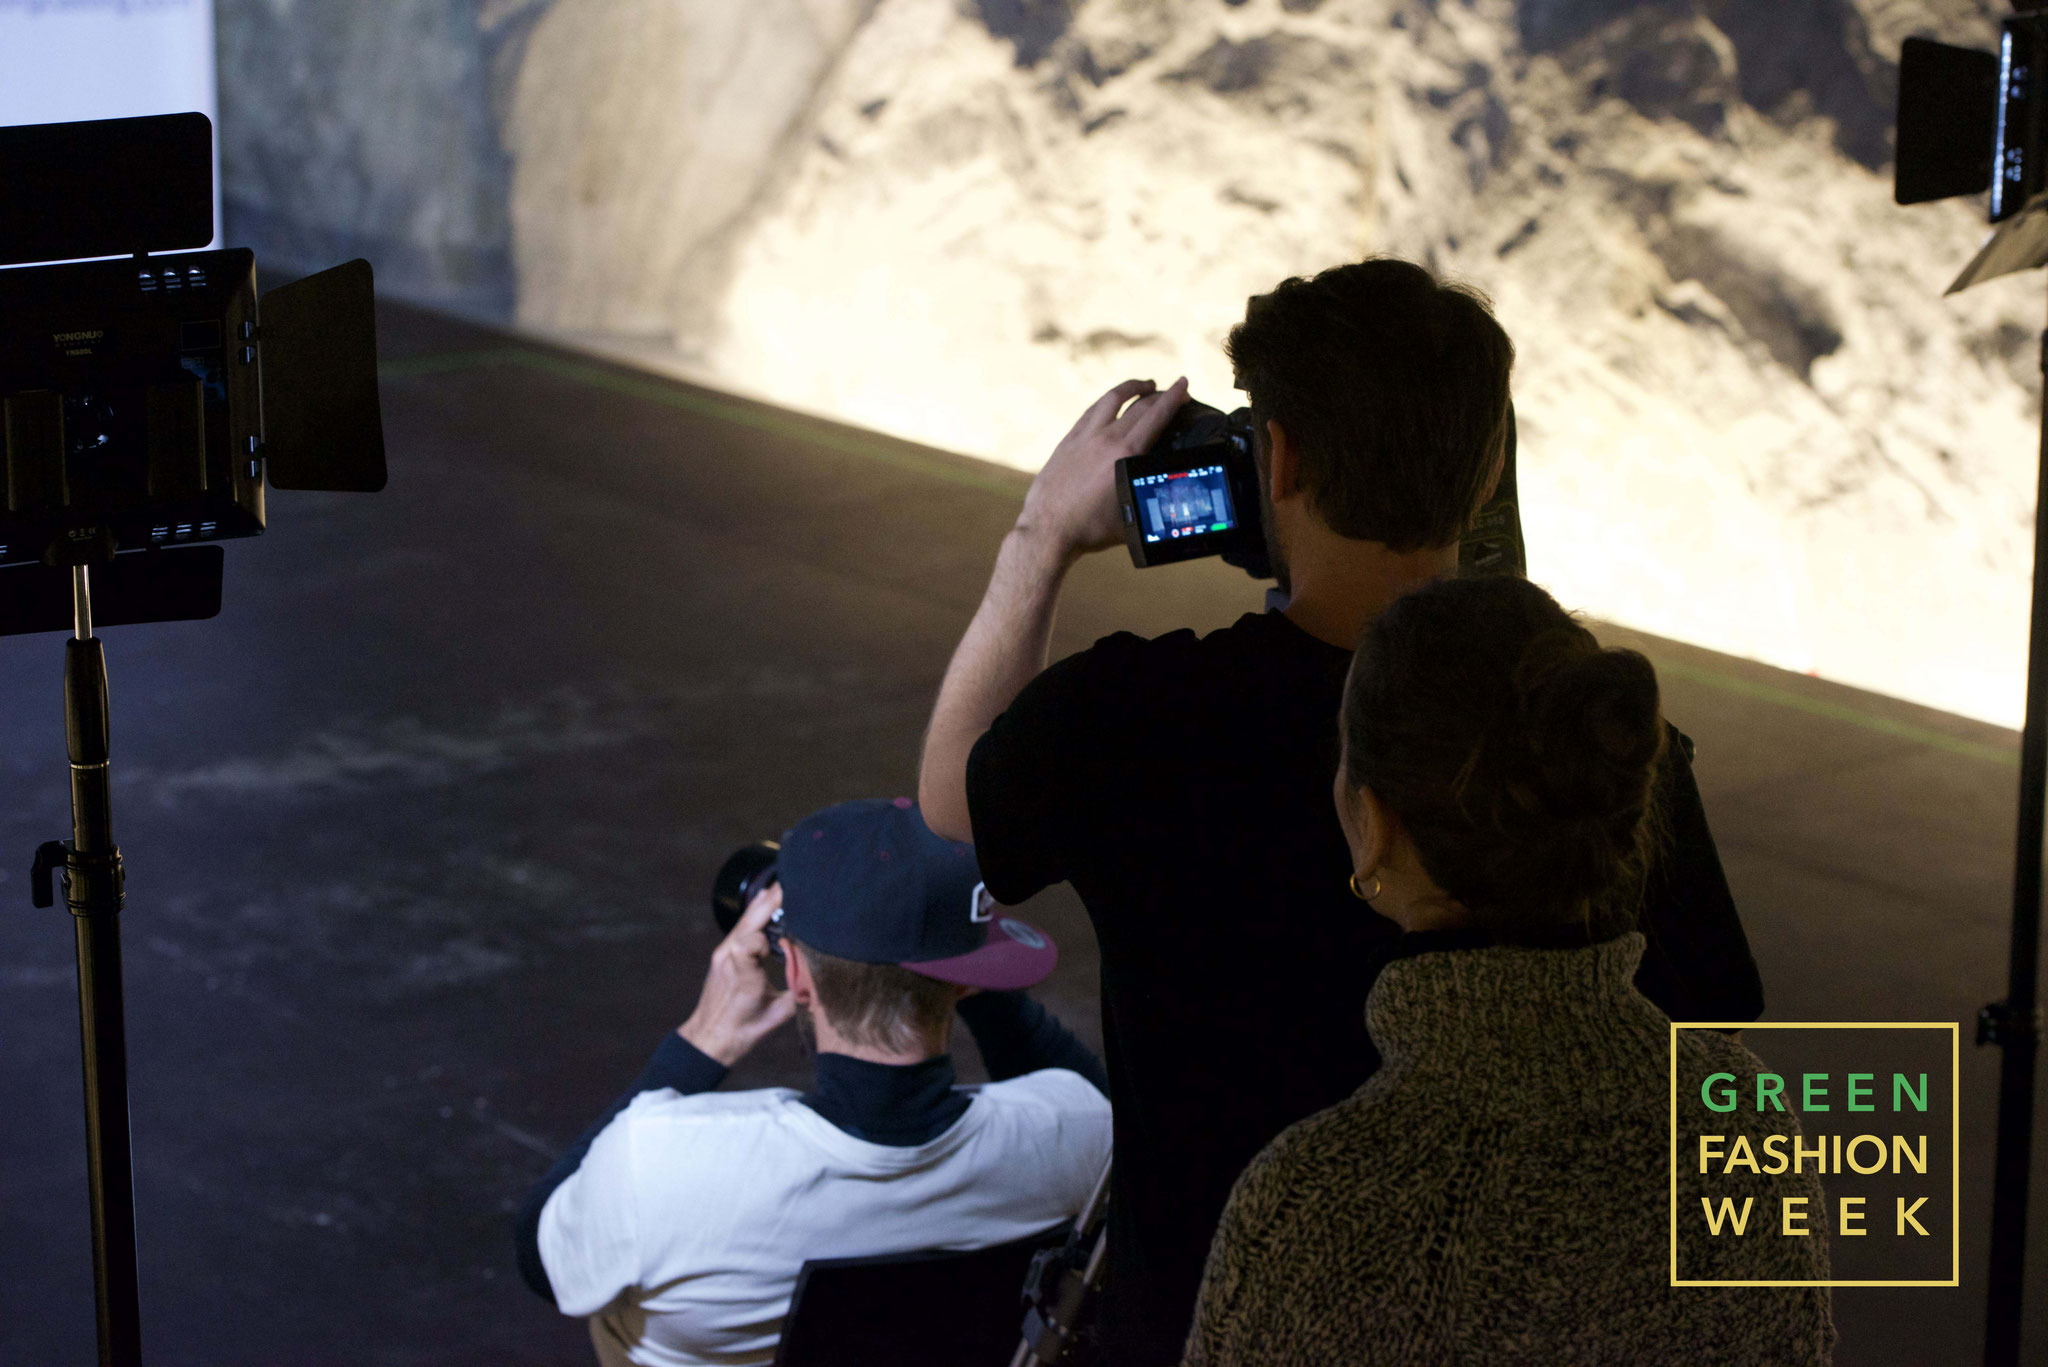 Set designer Francesco dell'Oro and photographer Stefano Dioli at work. Photo Credit: Jurg Hunziker | www.yakay.com